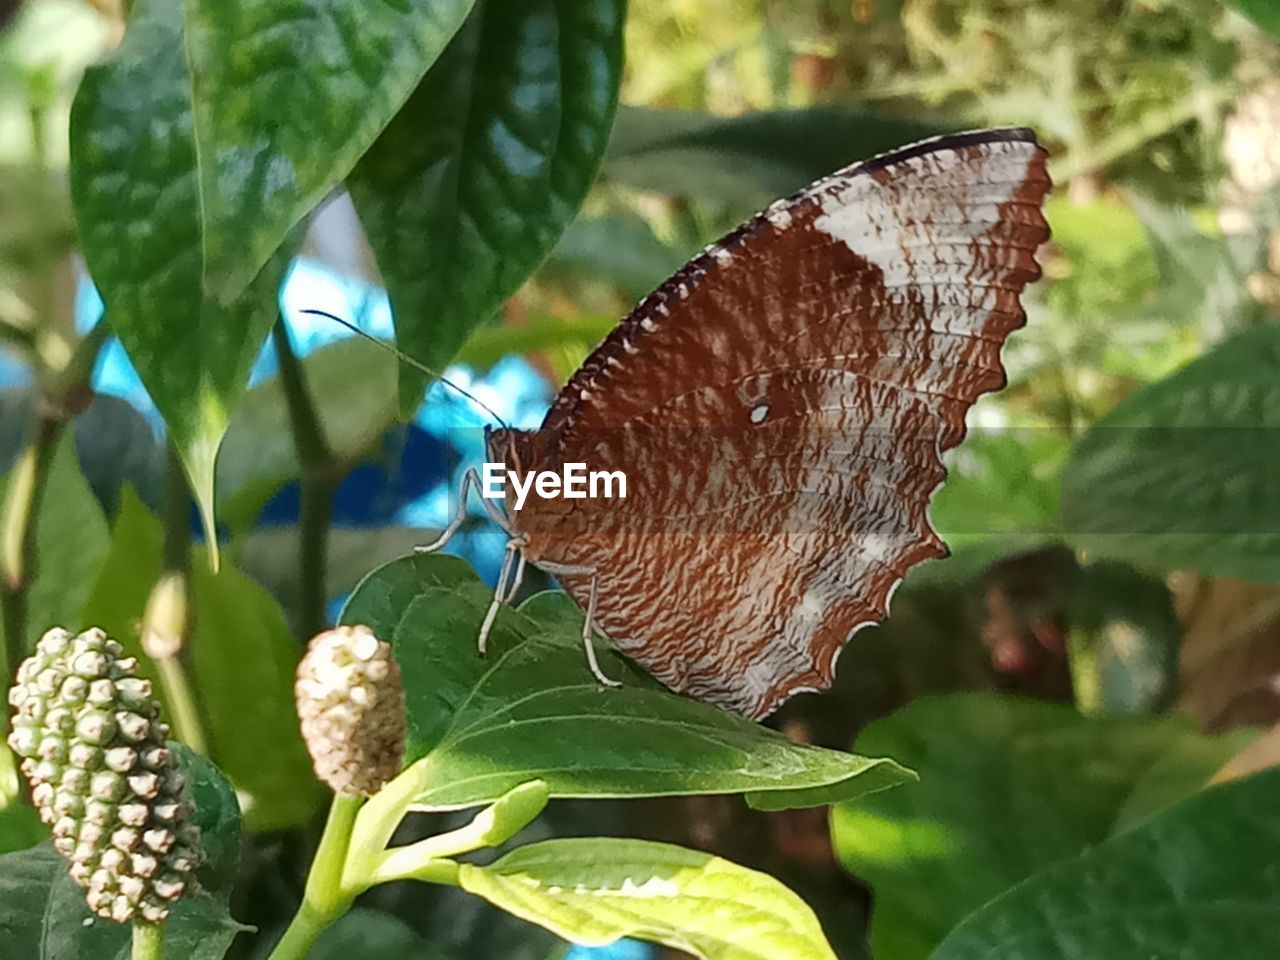 plant part, leaf, beauty in nature, plant, butterfly - insect, close-up, animal wing, animal wildlife, nature, growth, insect, no people, invertebrate, animals in the wild, one animal, animal, day, fragility, flower, animal themes, butterfly, outdoors, leaves, pollination